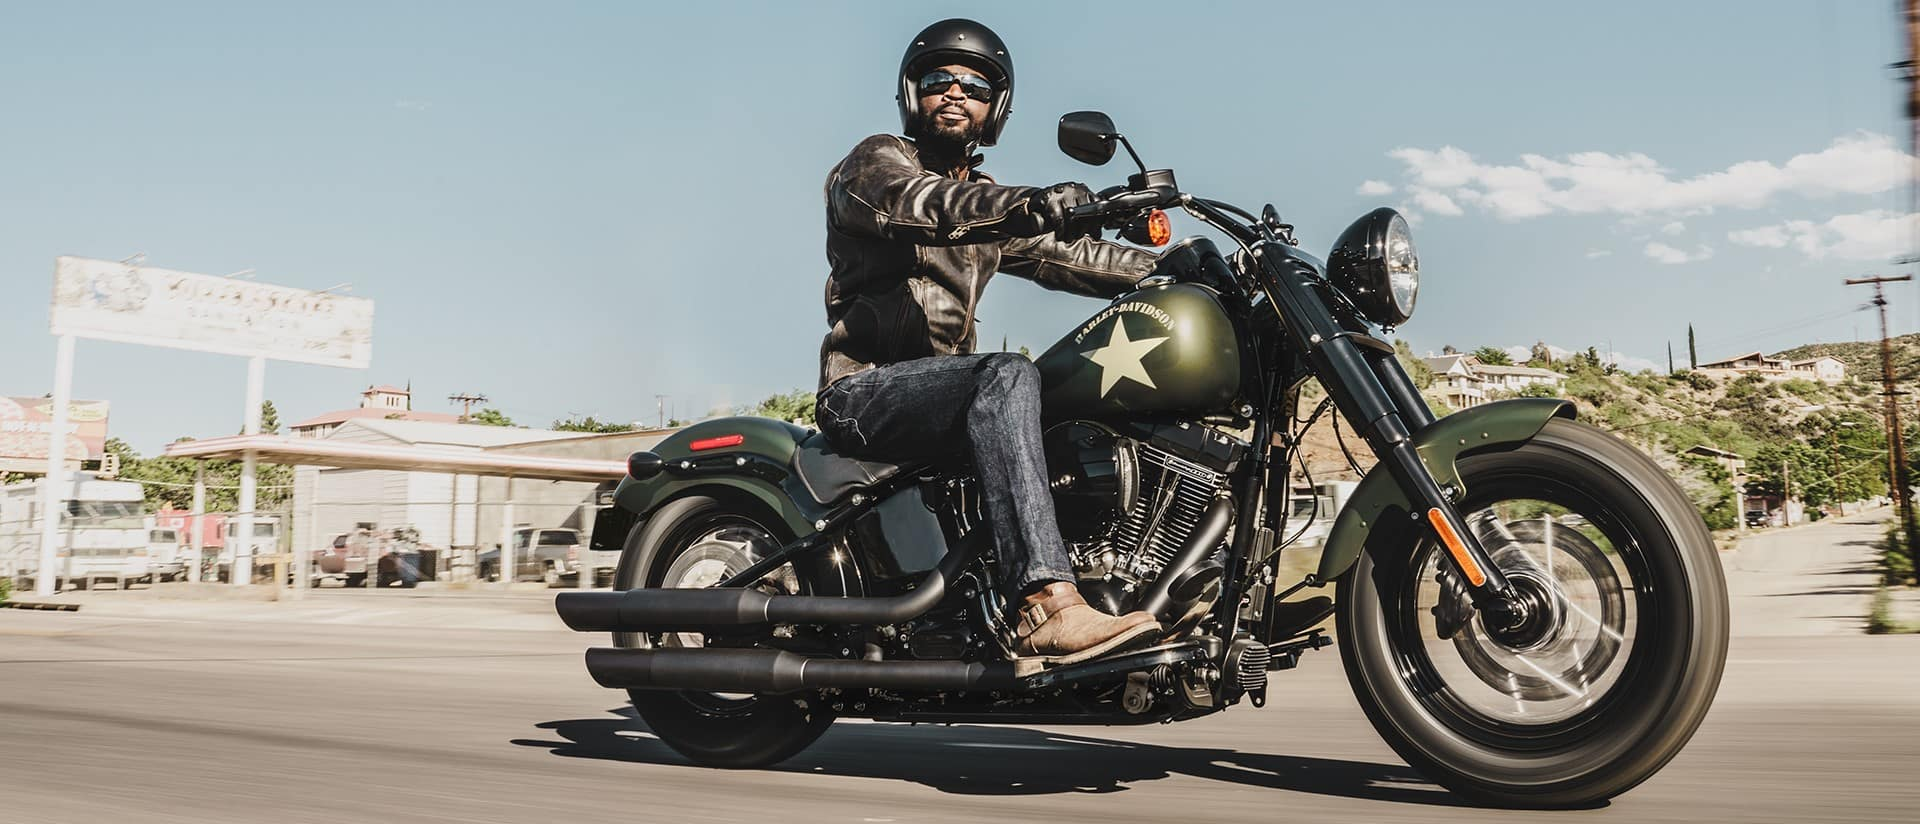 Climate Control Wiley-X Harley-Davidson Motorcycle Eyewear